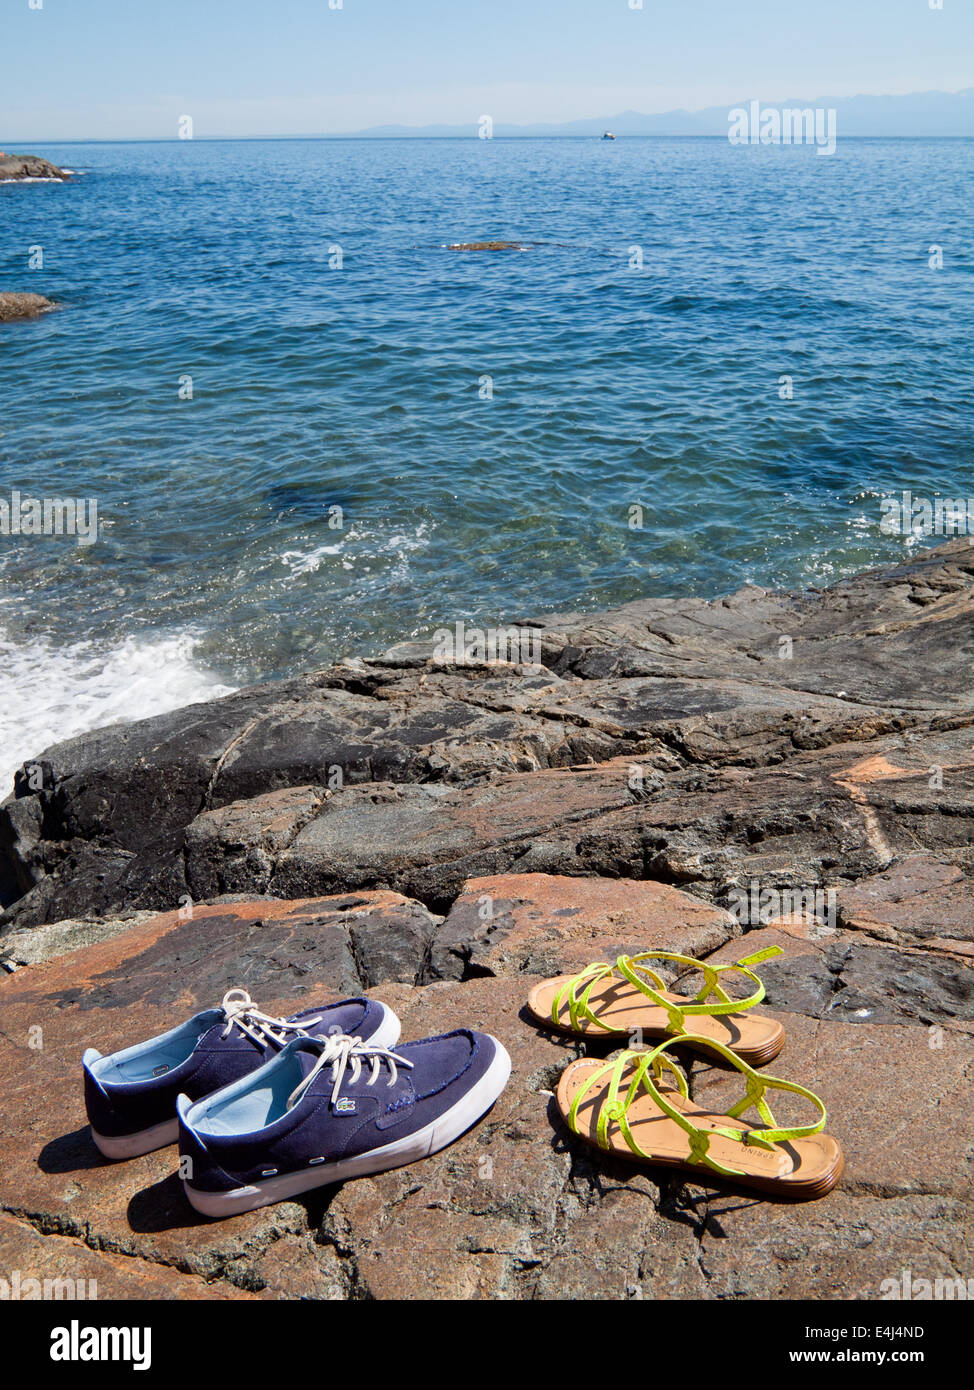 His and hers. Mens' boat shoes and ladies' sandals by the sea.  Victoria, British Columbia, Canada. - Stock Image